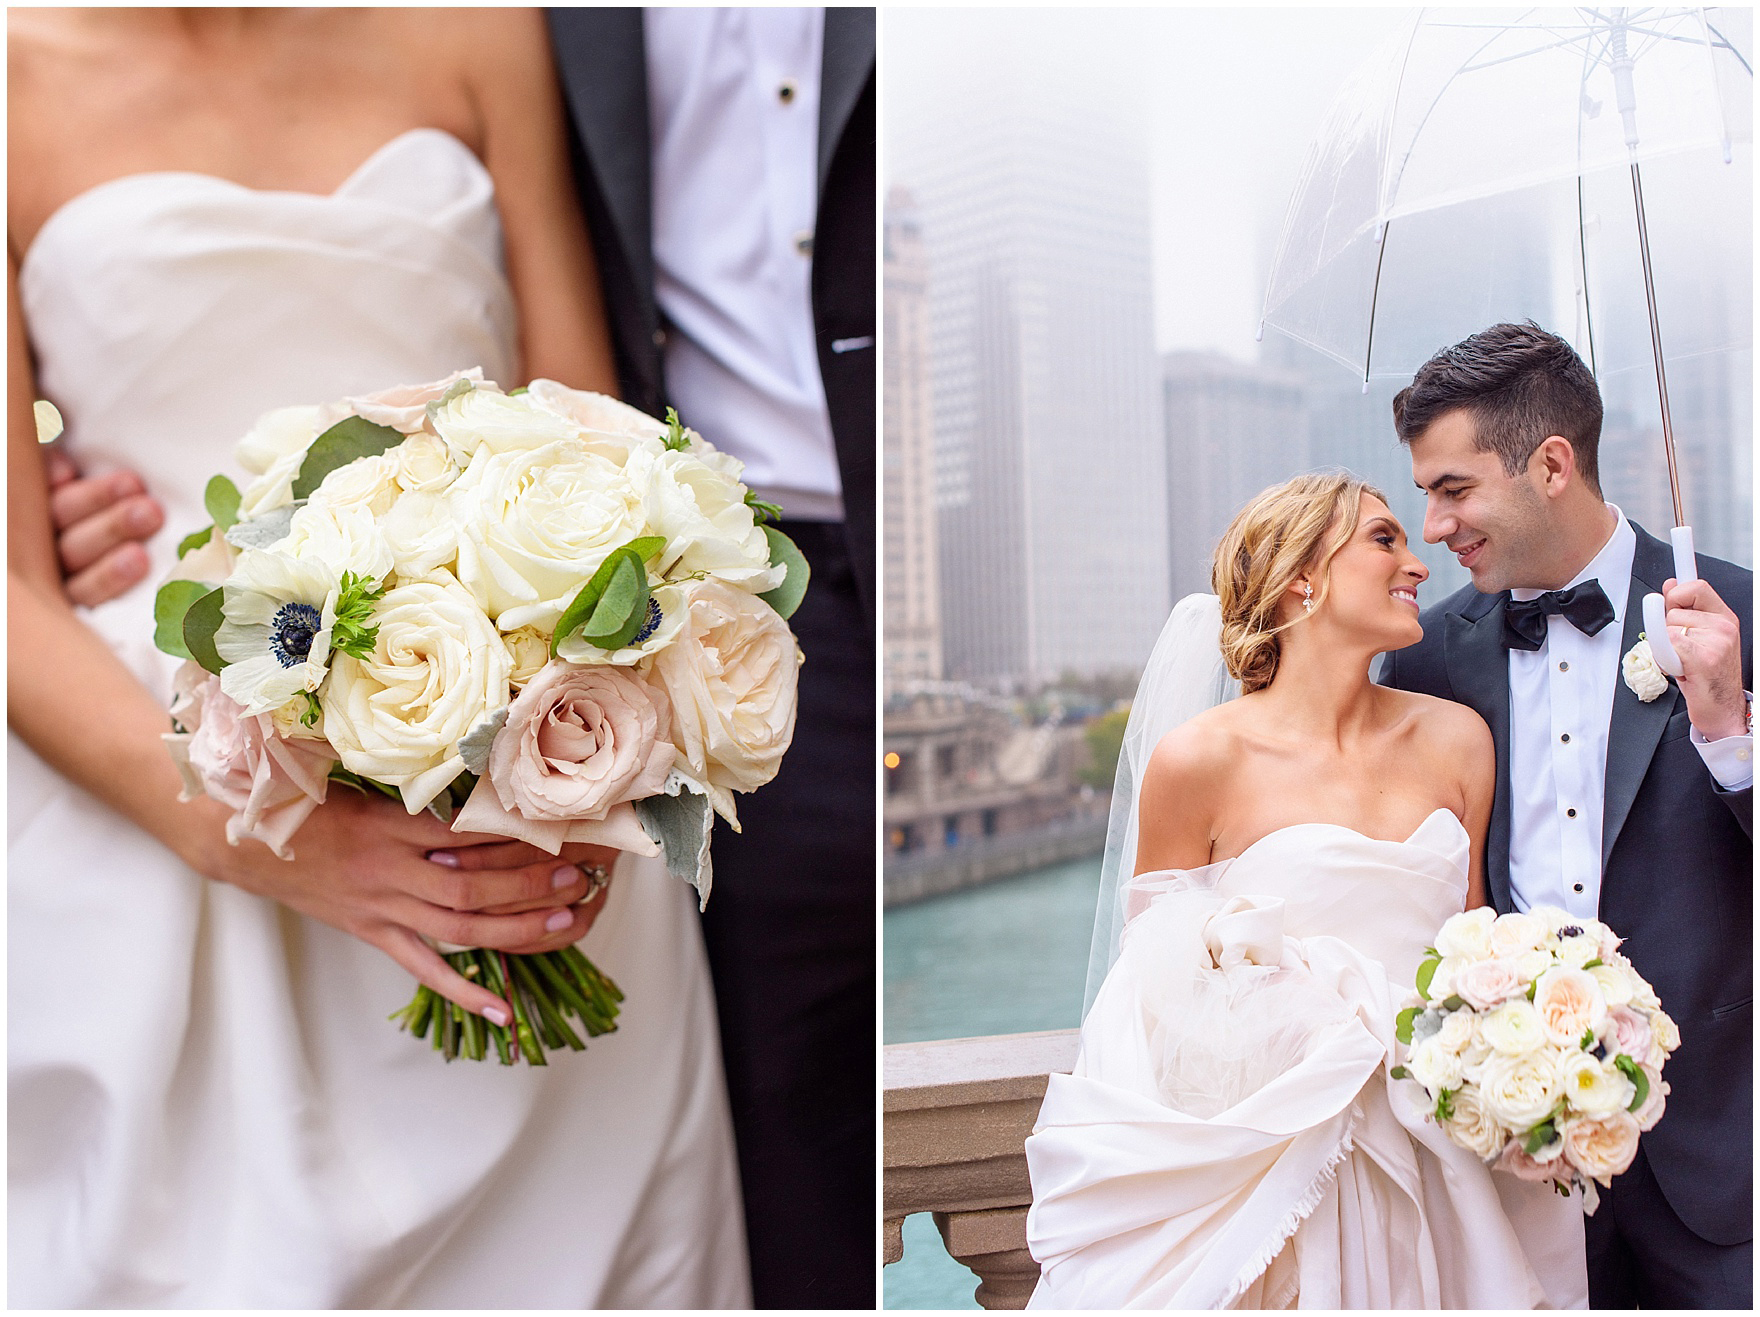 A close up of a bride's bouquet with ivory and blush roses during a St. Clement Germania Place Chicago wedding.